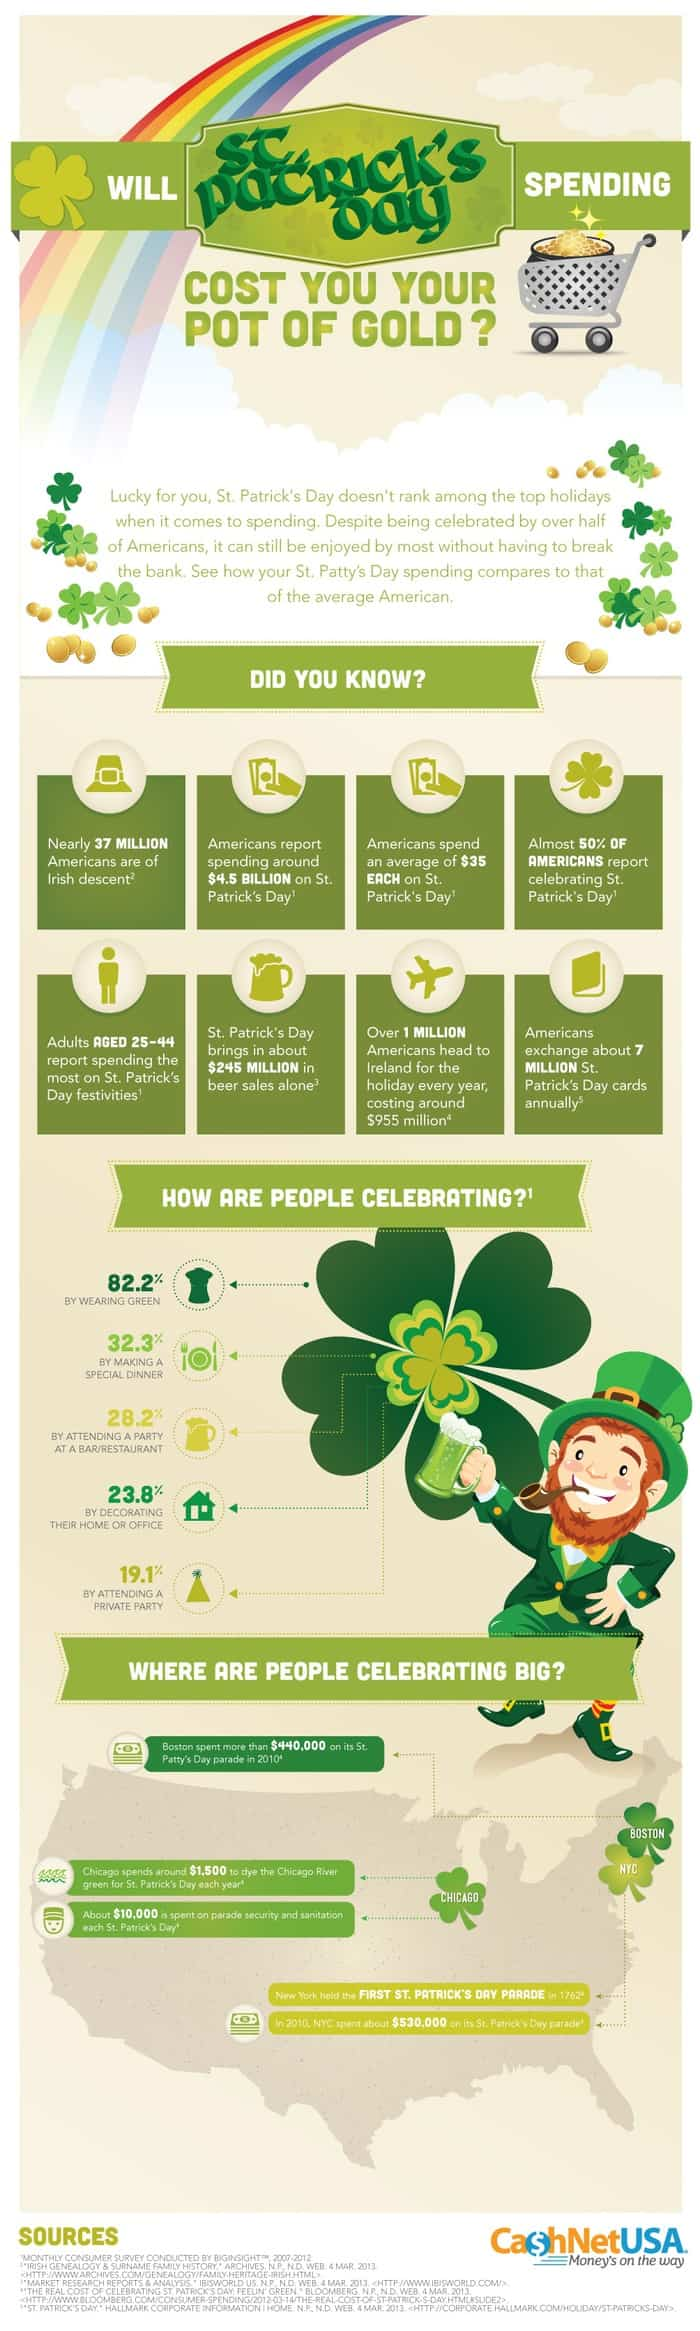 Will-St.-Patricks-Day-Spending-Cost-You-Your-Pot-of-Gold_-Infographic